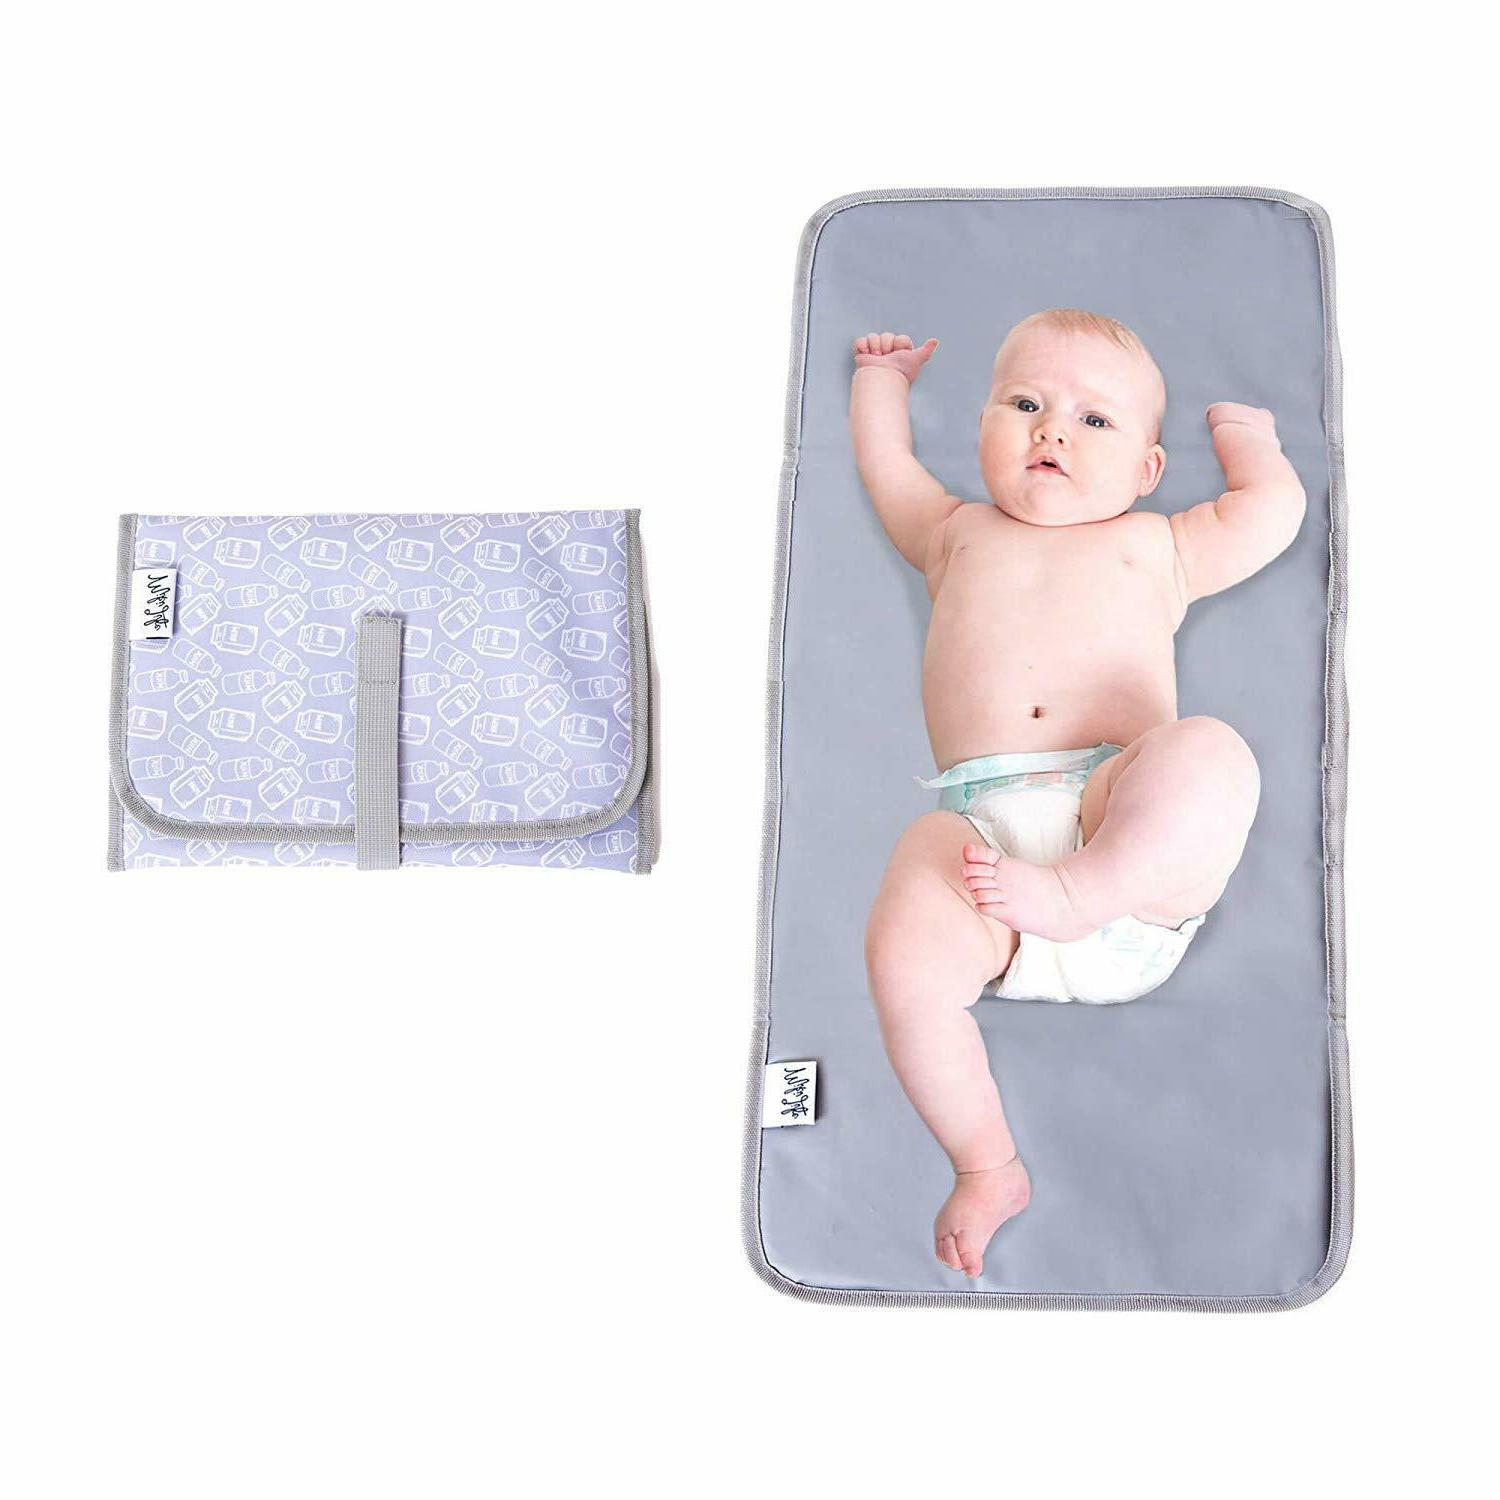 baby changing pad fully padded for baby